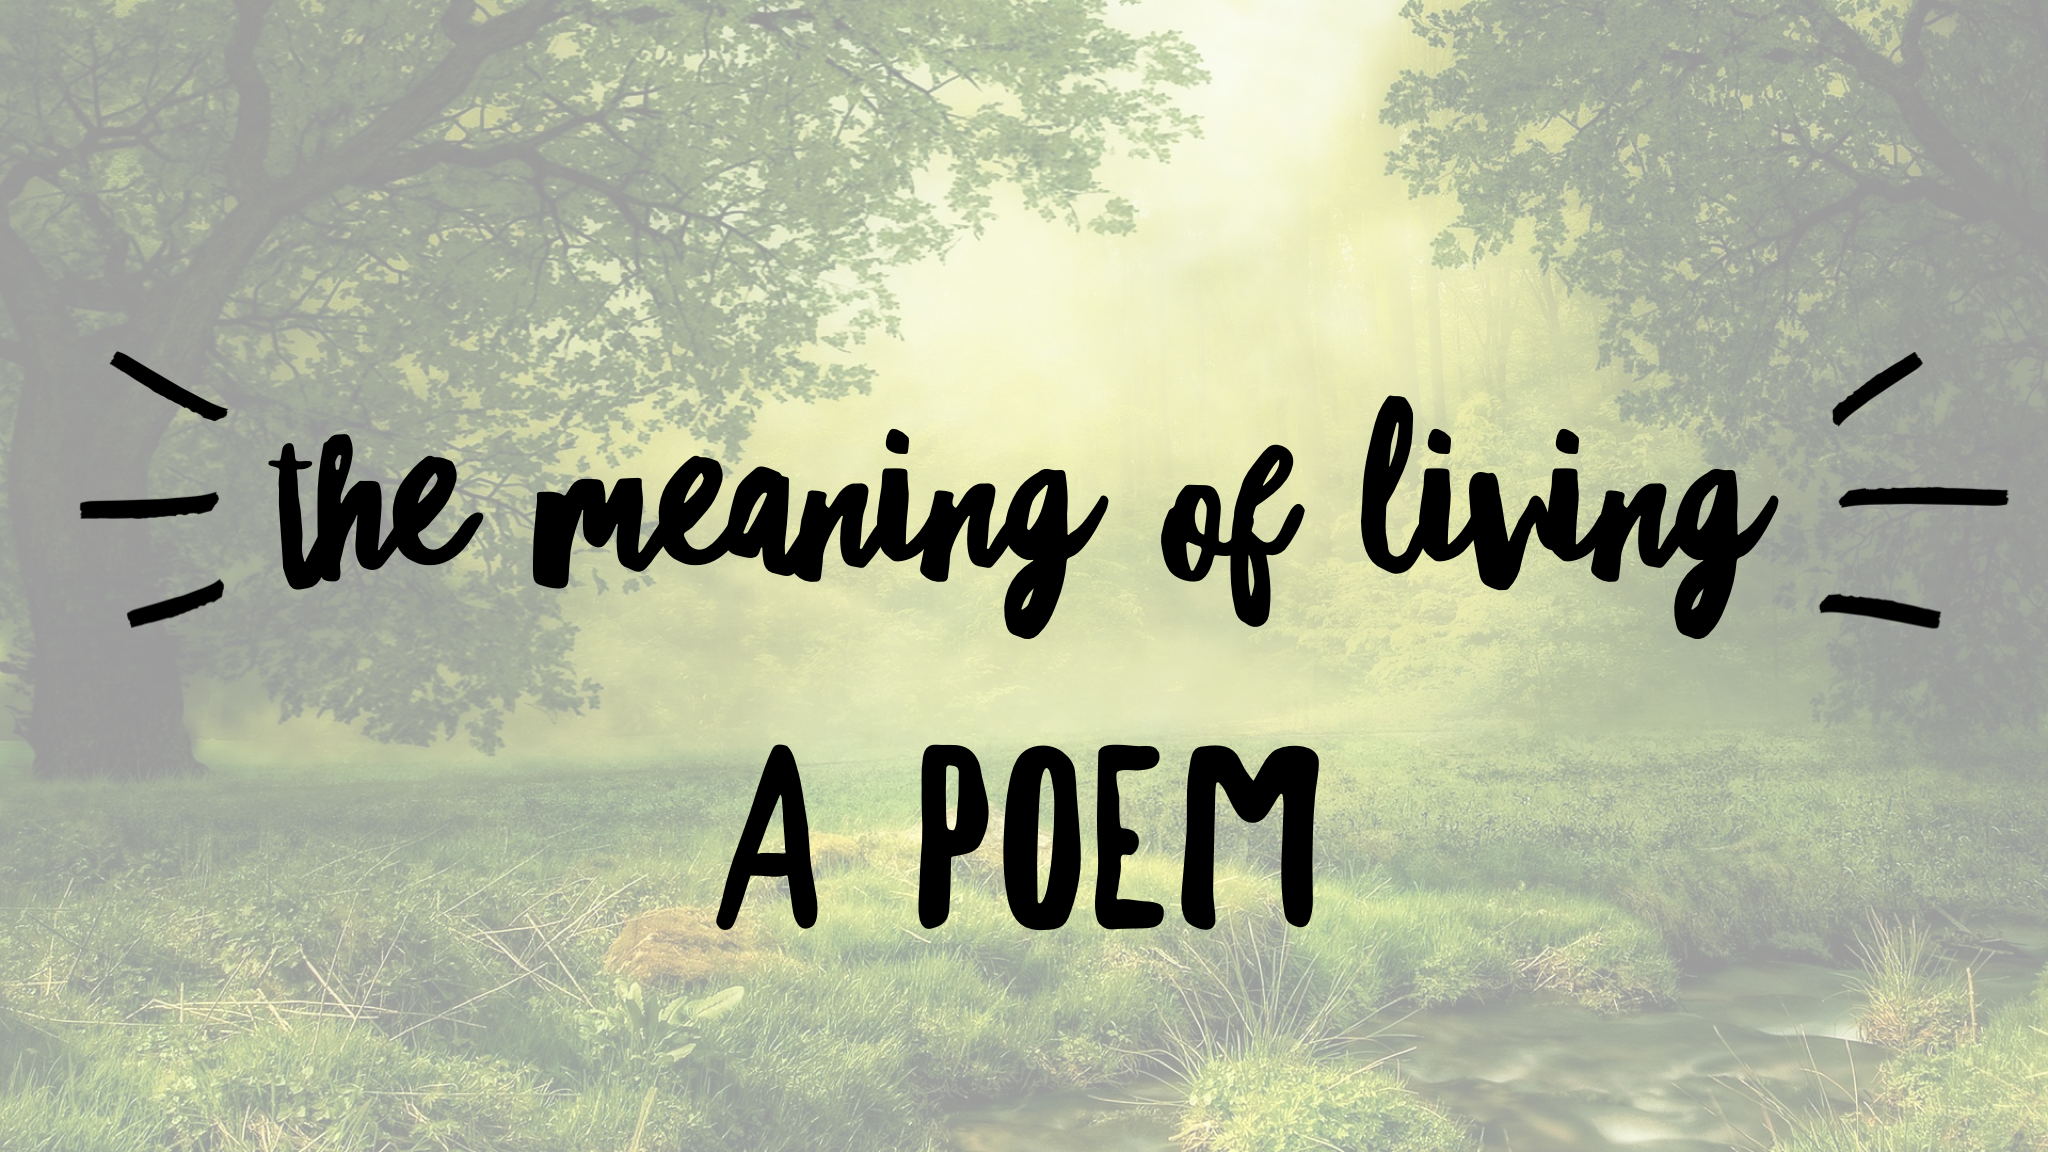 My Meaning of Living